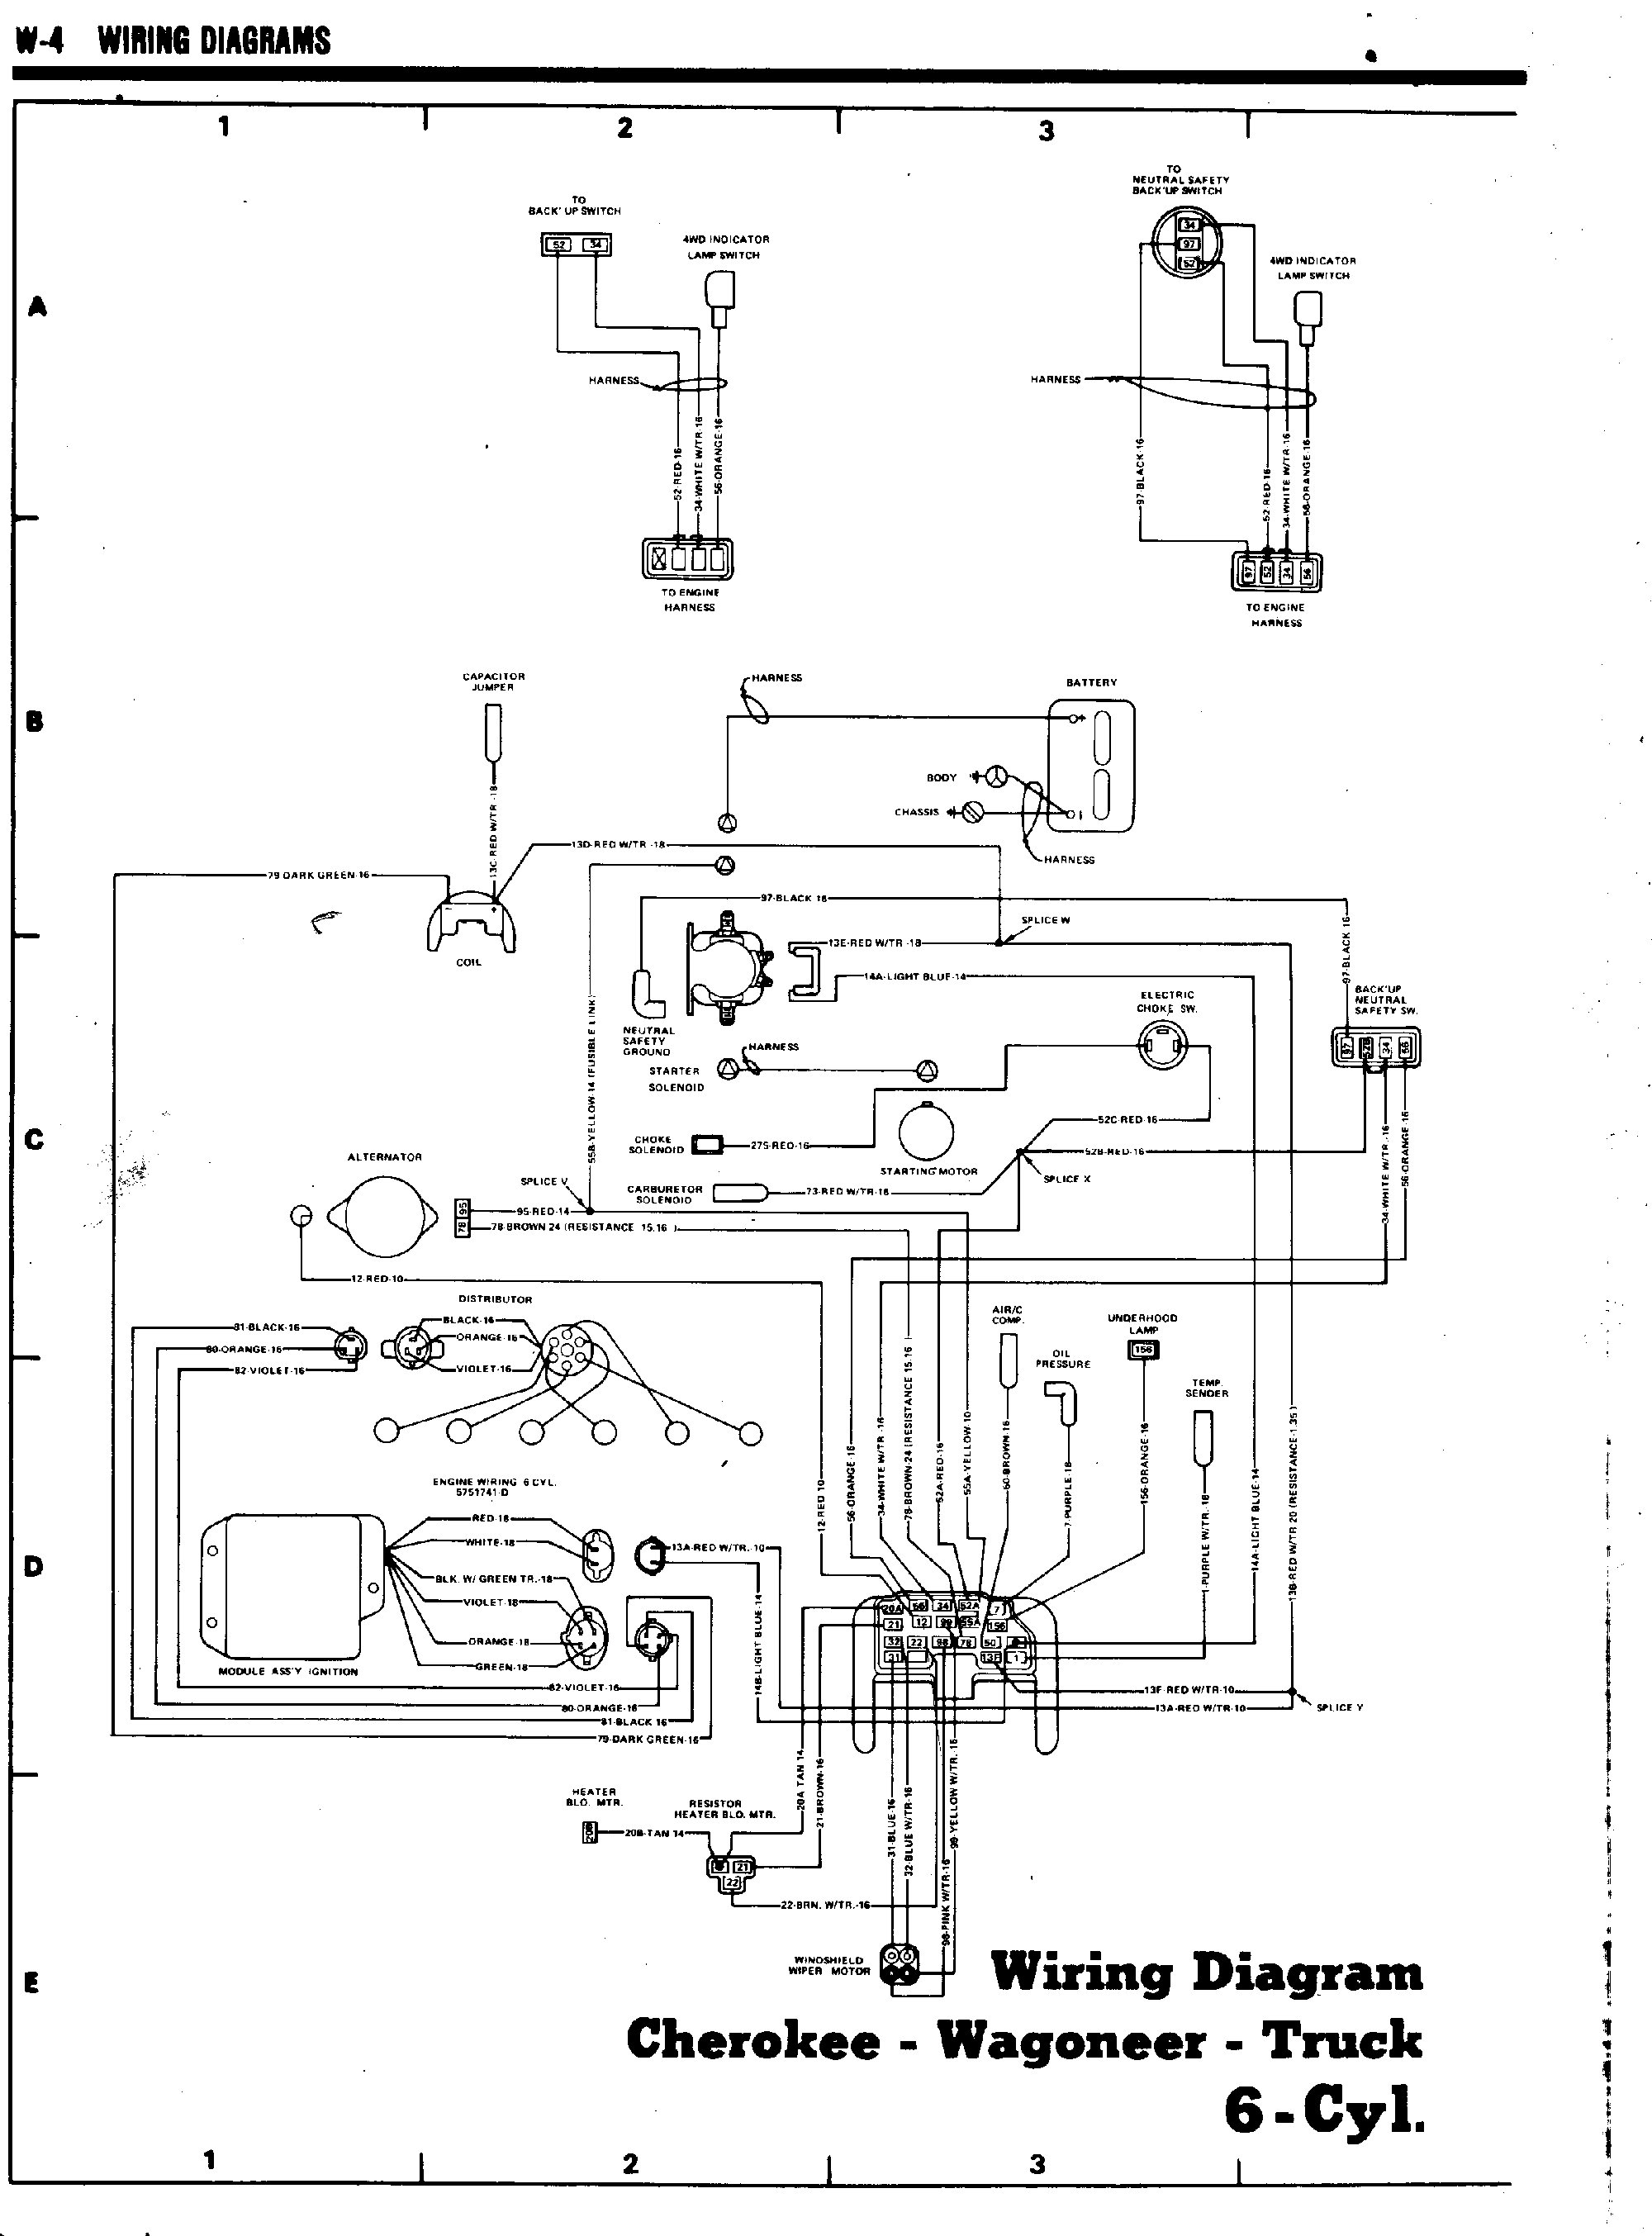 86 Cj7 Engine Wiring Library 1984 Jeep Cj Diagram Wagoneer Data Schema 1977 1985